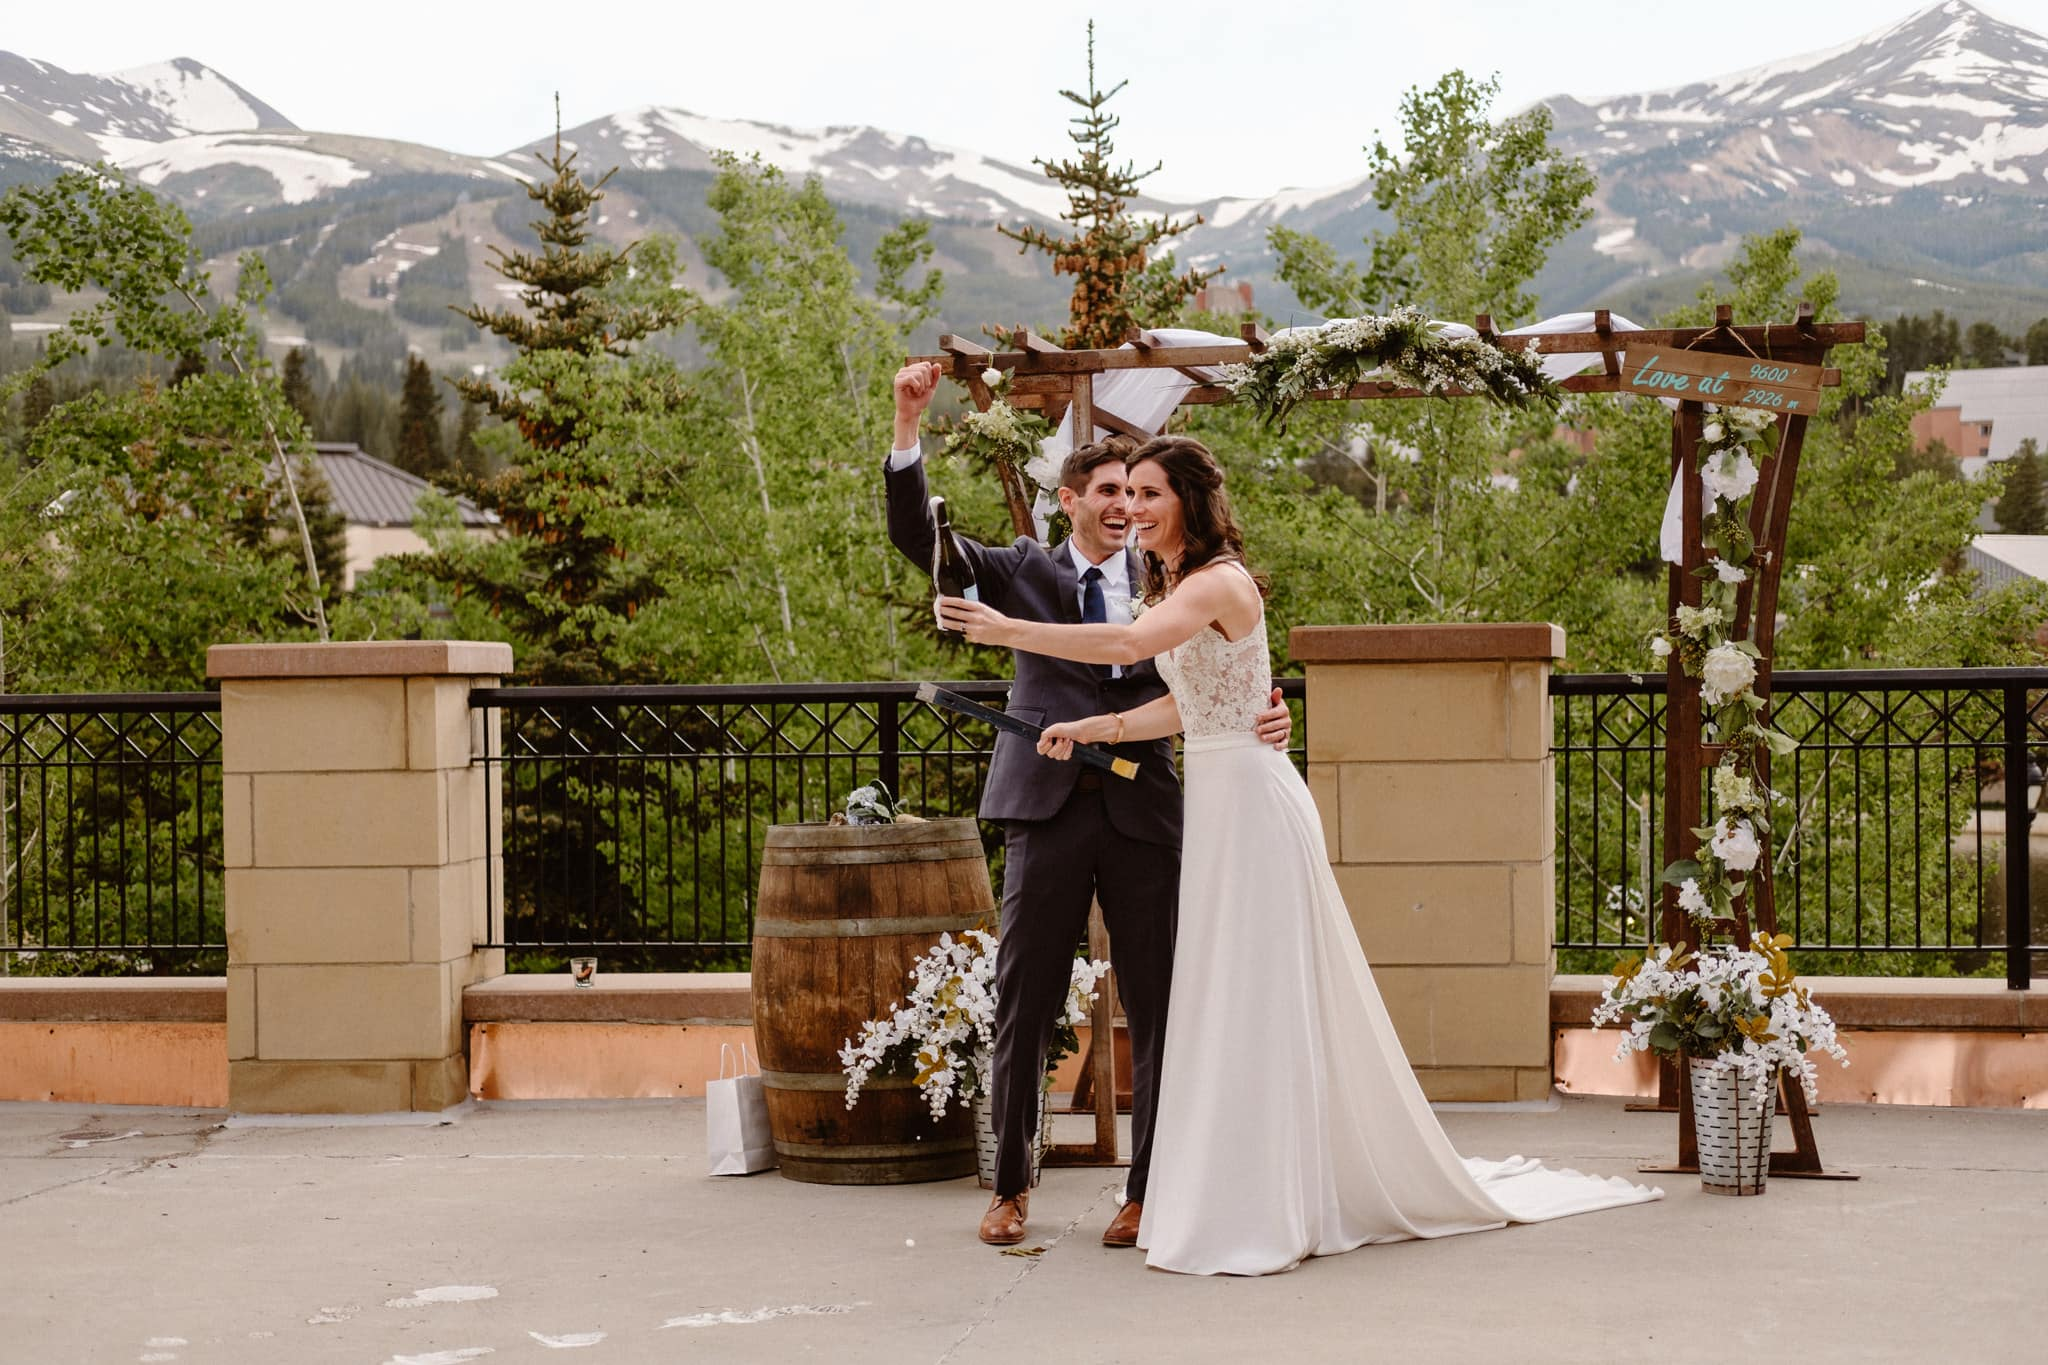 Bride popping champagne bottle with crowbar with groom watching, Main Street Station wedding venue in Breckenridge, Colorado wedding photographer